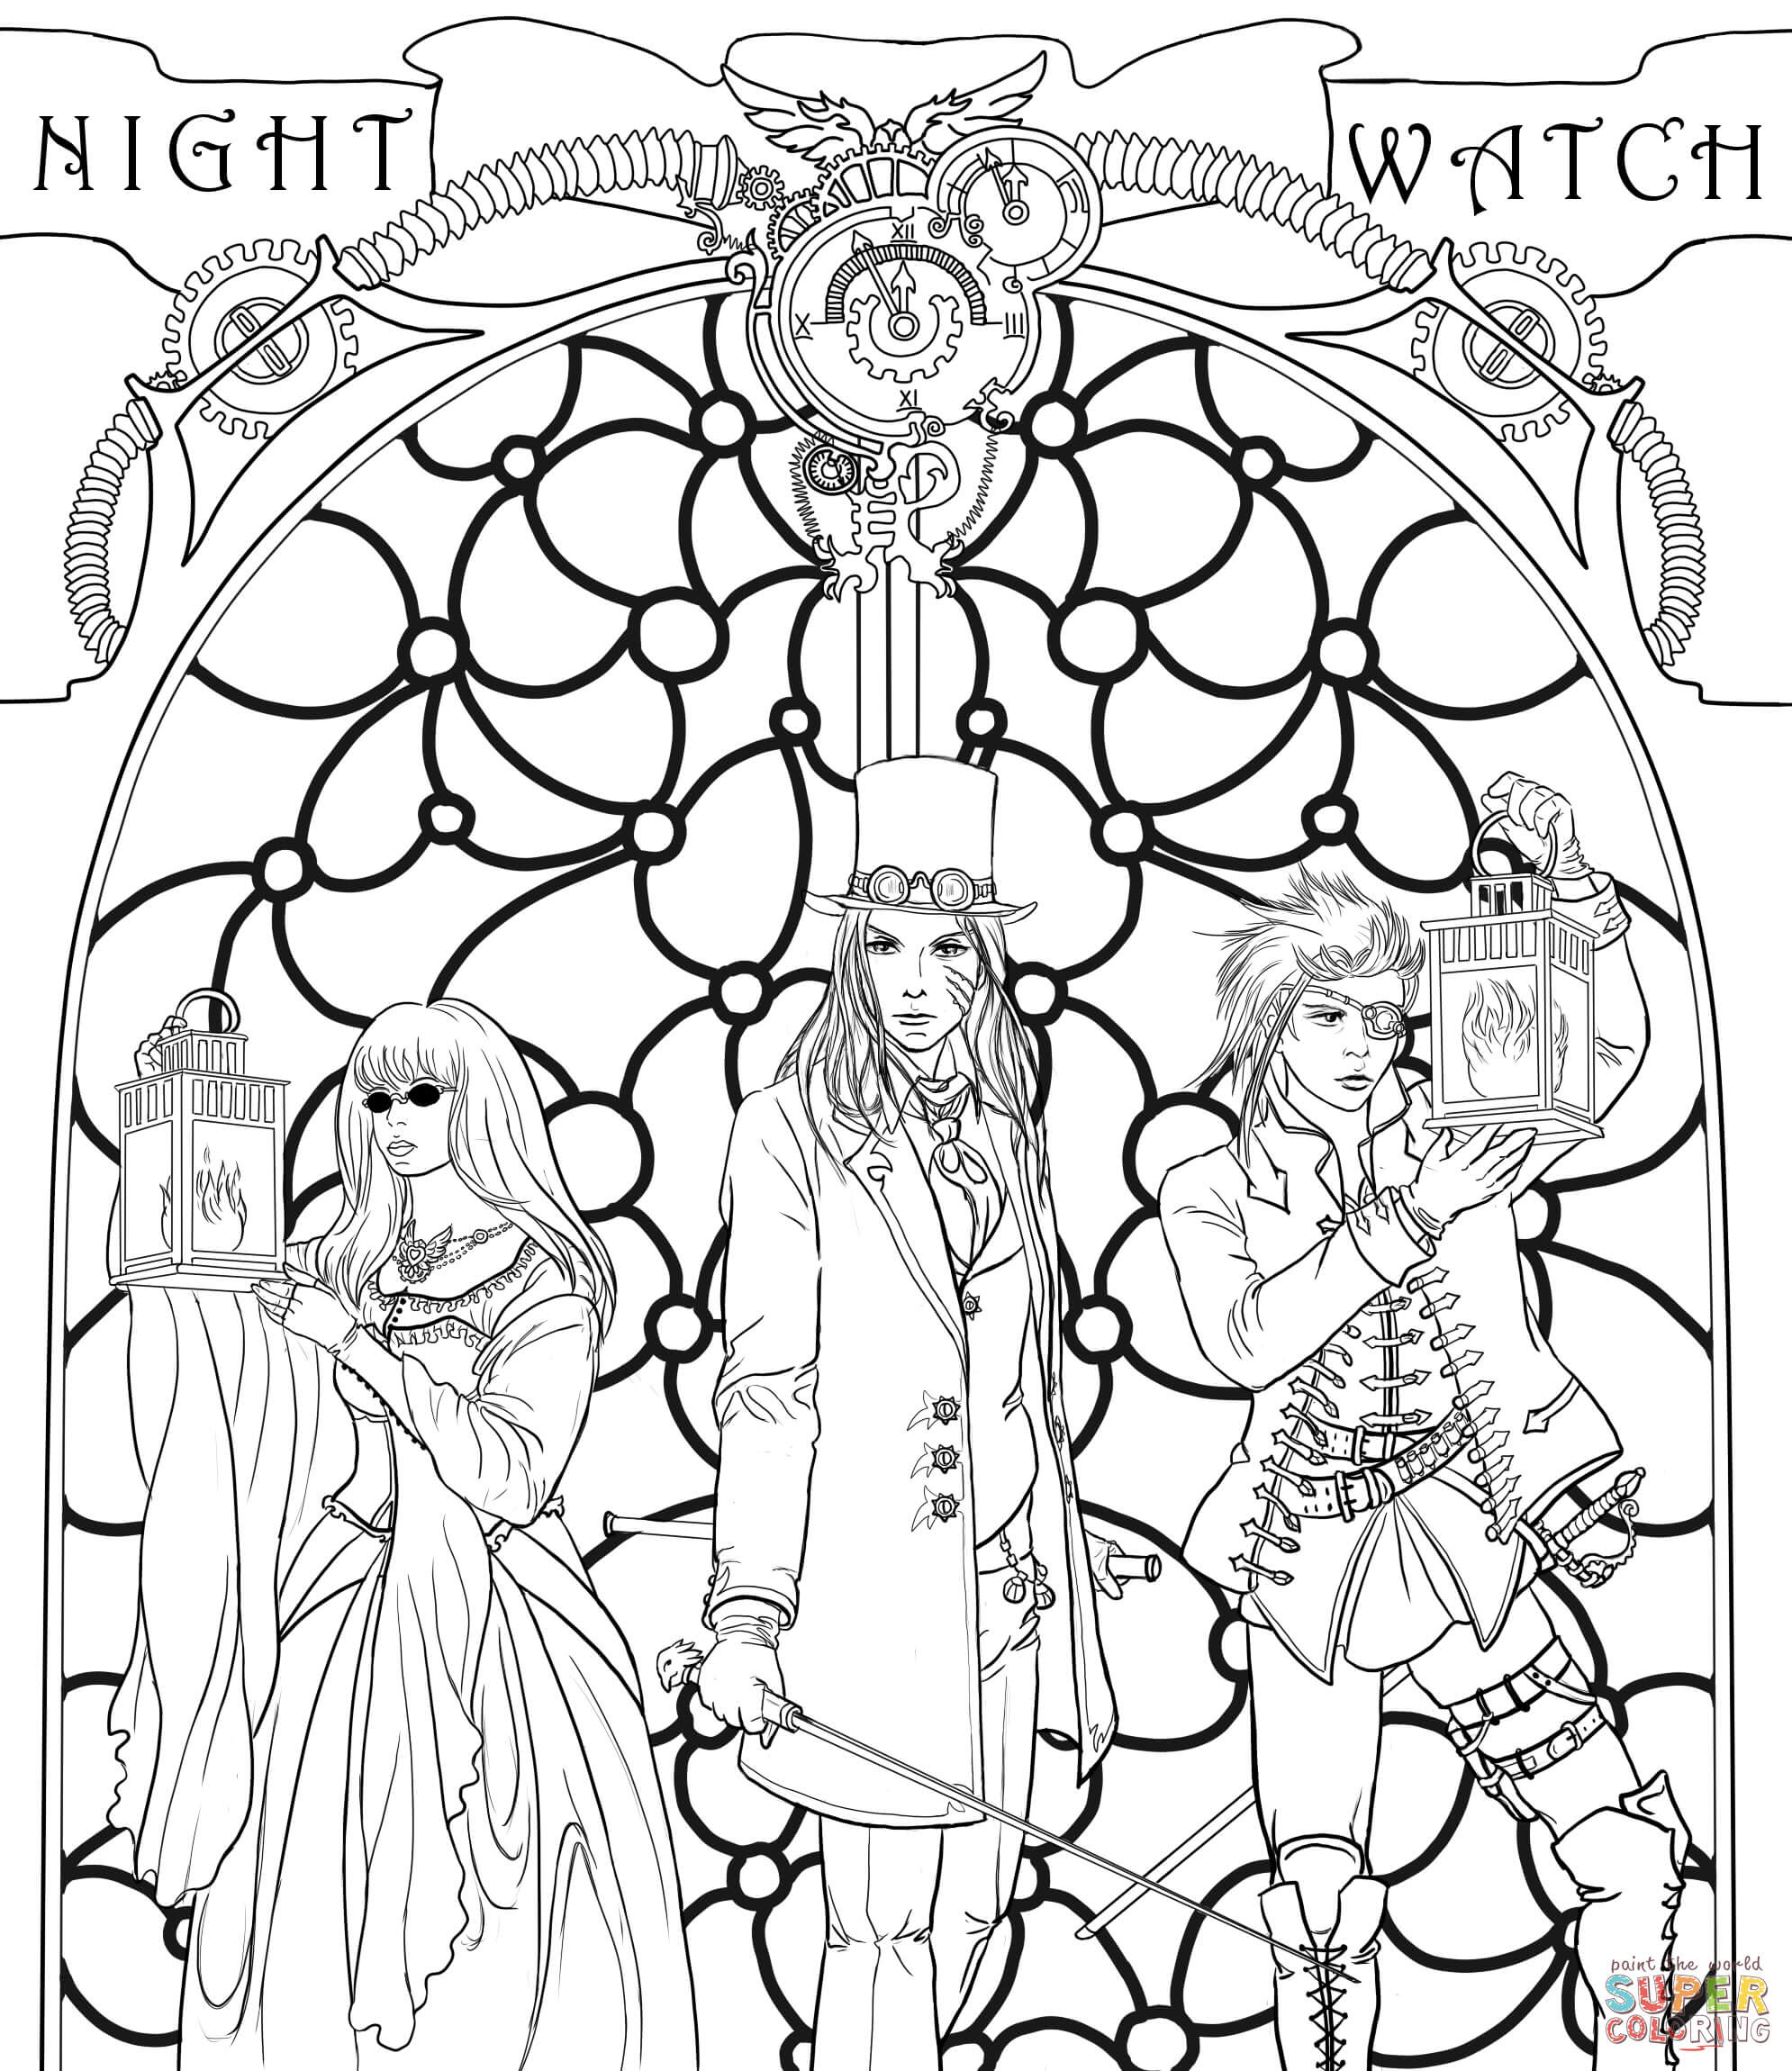 Steampunk Night Watch Crew coloring page | Free Printable ...